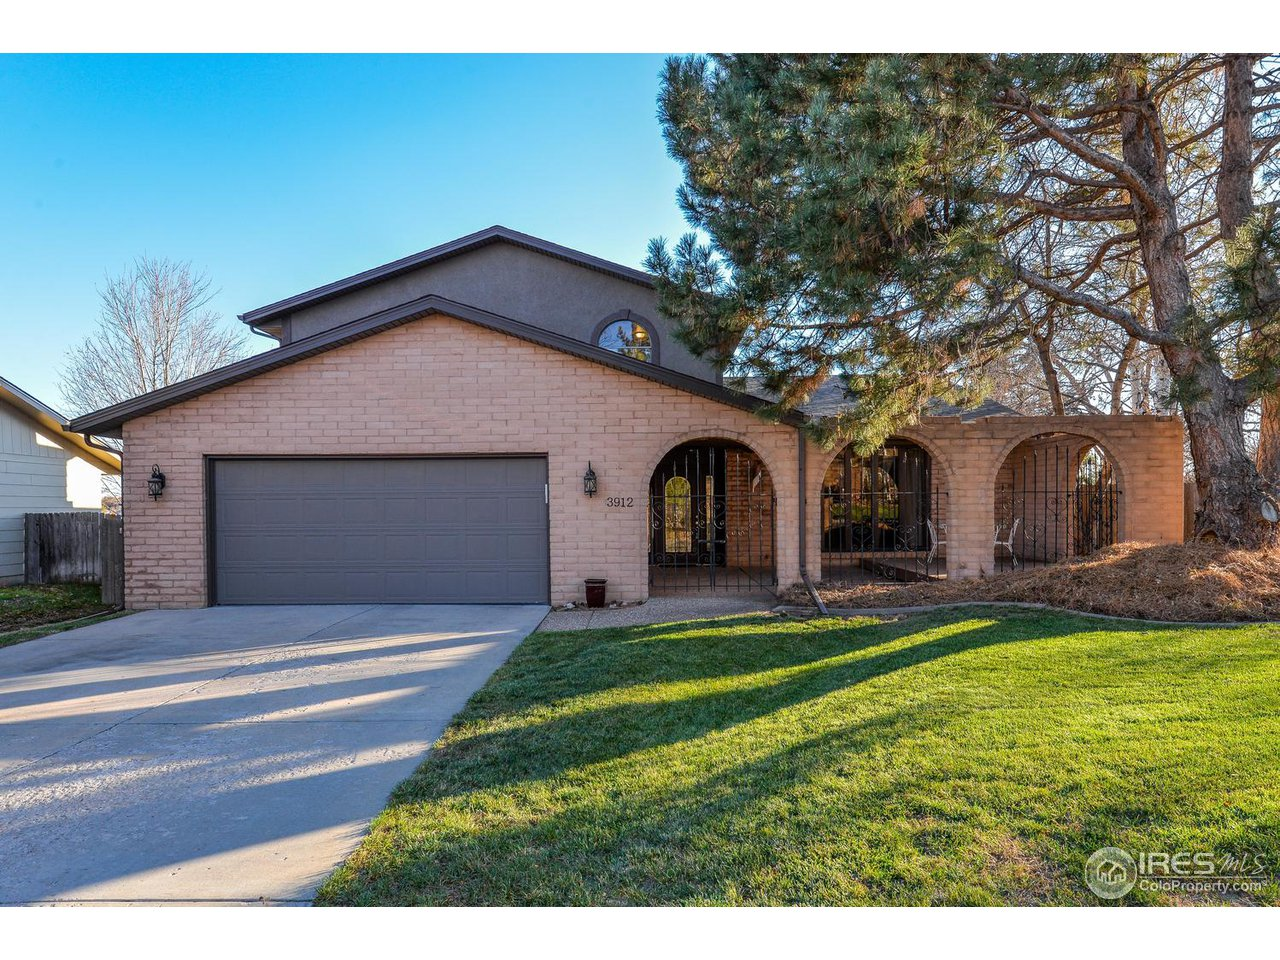 COME SEE this gorgeous home that backs to OPEN SPACE and sits in a quiet neighborhood! Enjoy the relaxing gated courtyard out front, and watch beautiful Colorado sunsets from your very own private balcony directly off the master bedroom. NEW roof, new gutters, new water tank-less water heater, new furnace, granite counter tops, and luxury 5-piece master bath. NO HOA. Additional basement living area has separate entrance. Could be a rental!